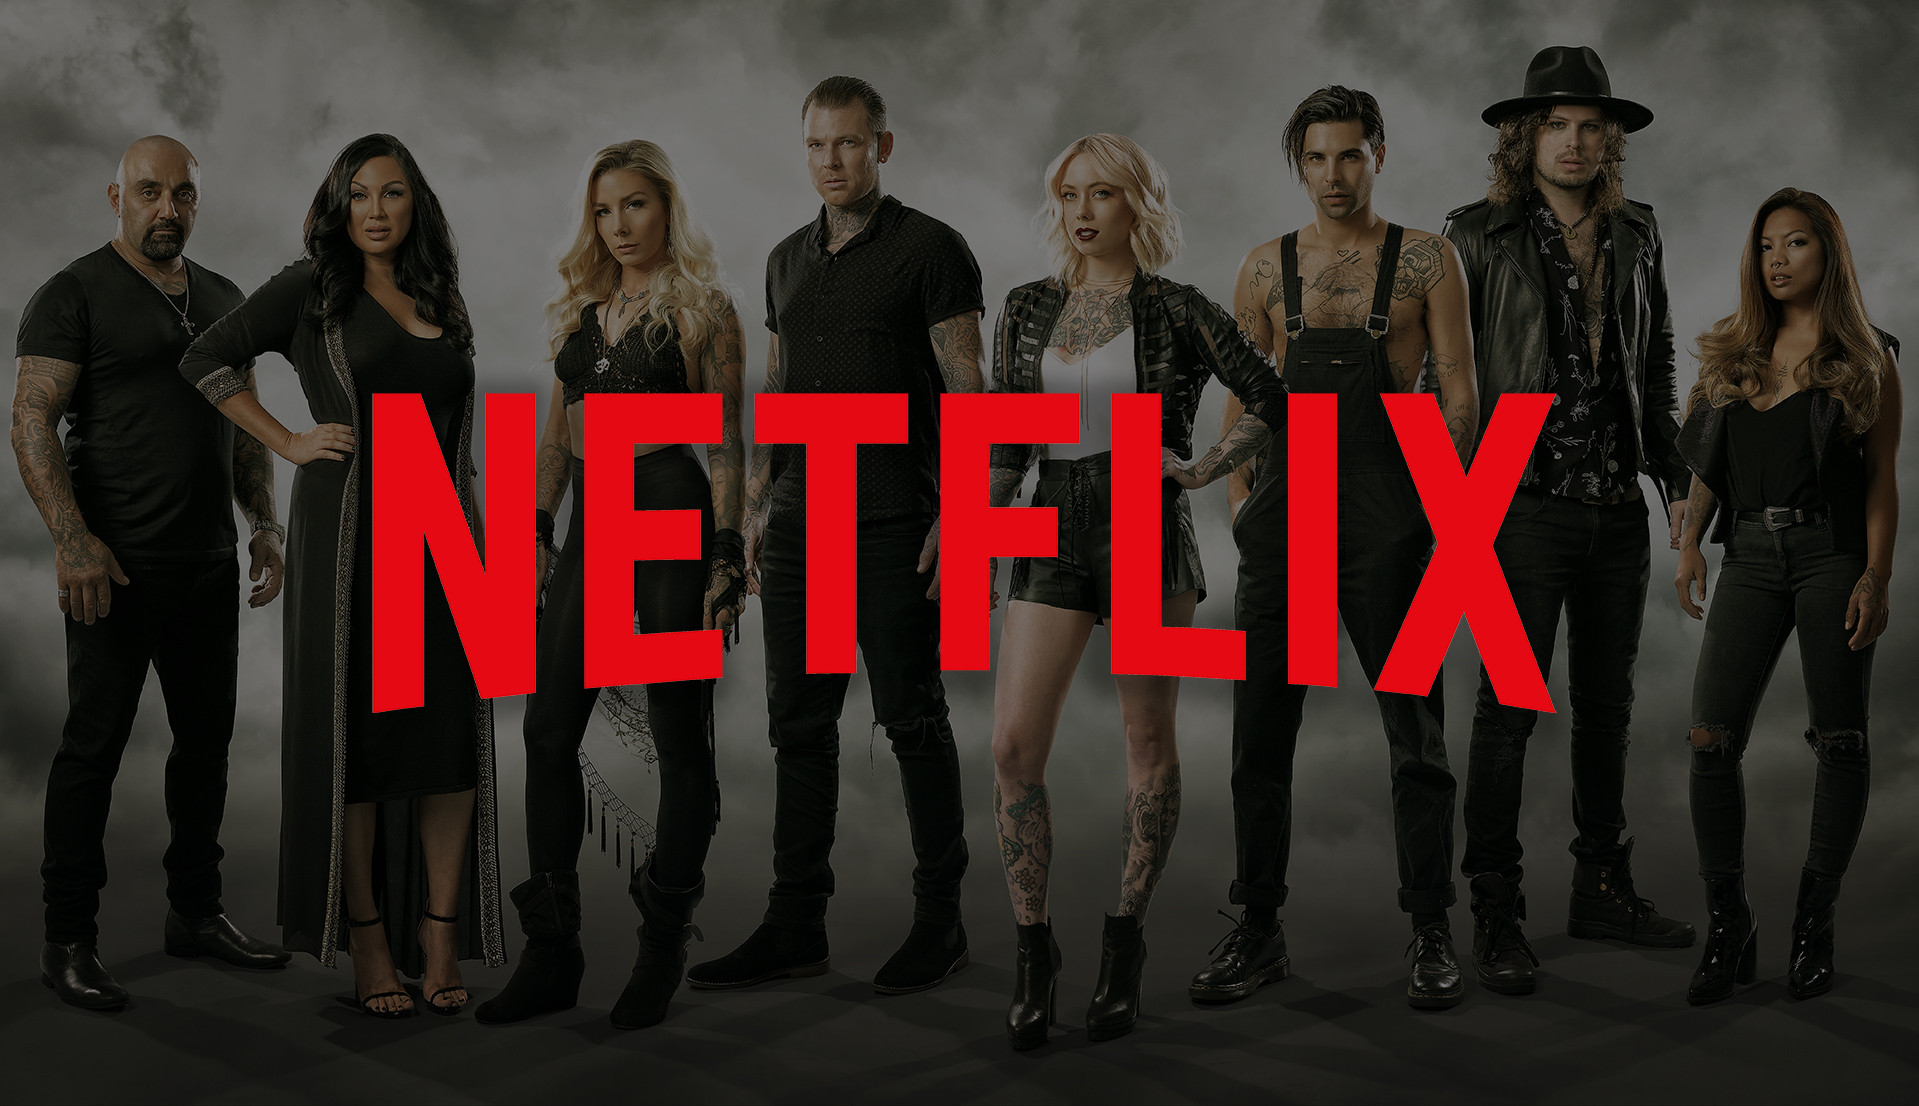 Netflix Launches Bondi Ink Tattoo Crew in USA